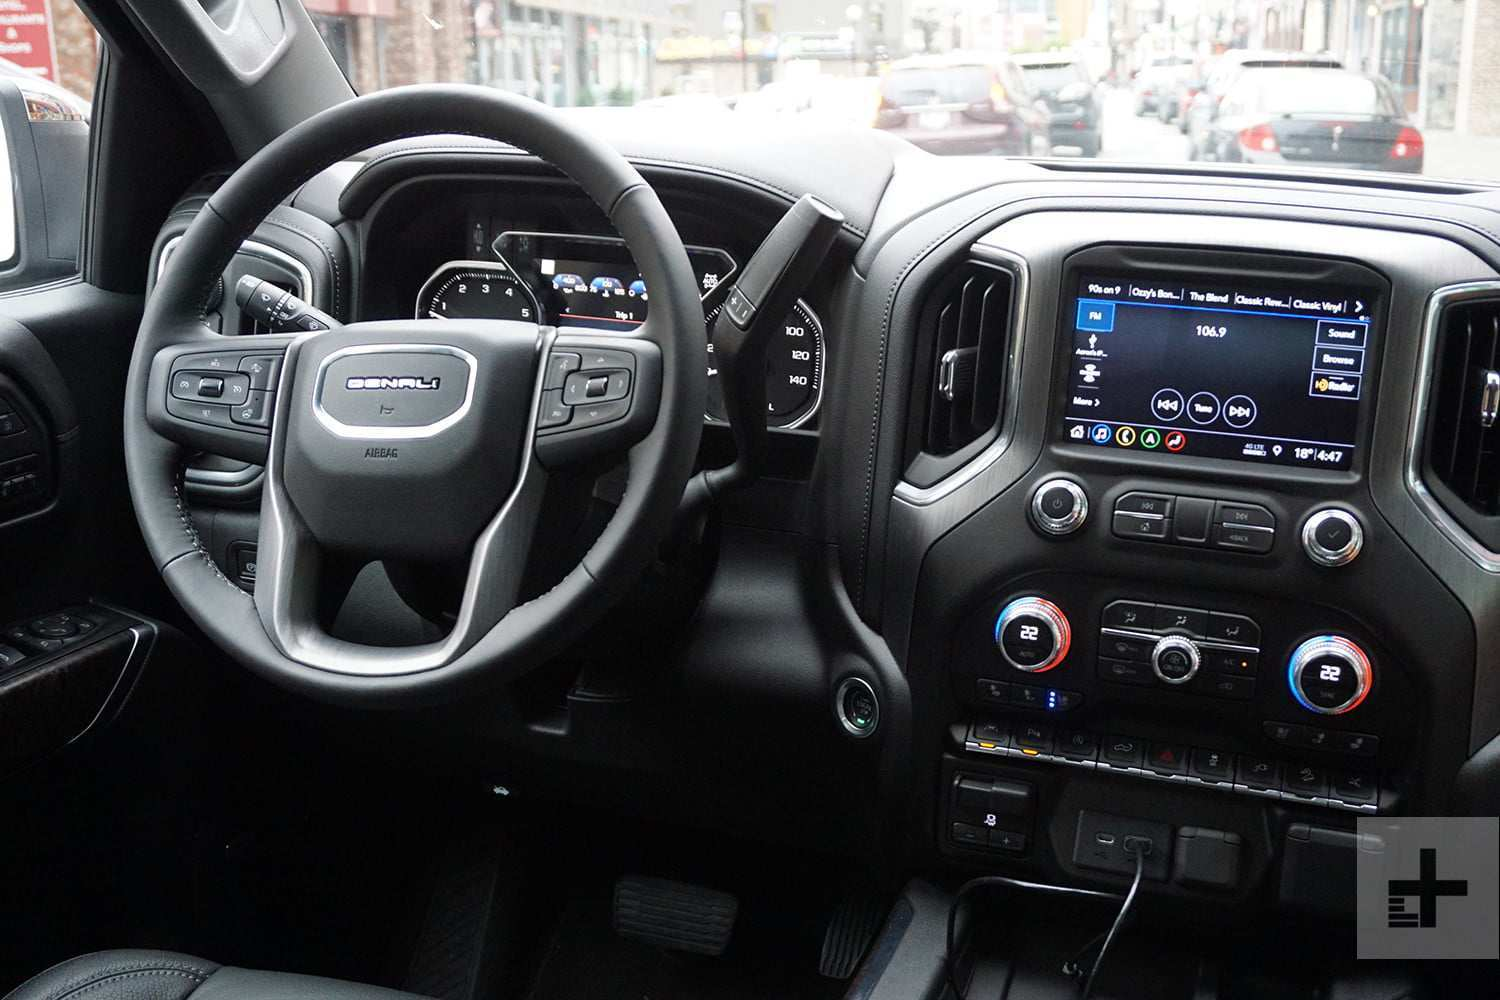 70 Best Review 2019 Gmc 1500 Interior Style for 2019 Gmc 1500 Interior